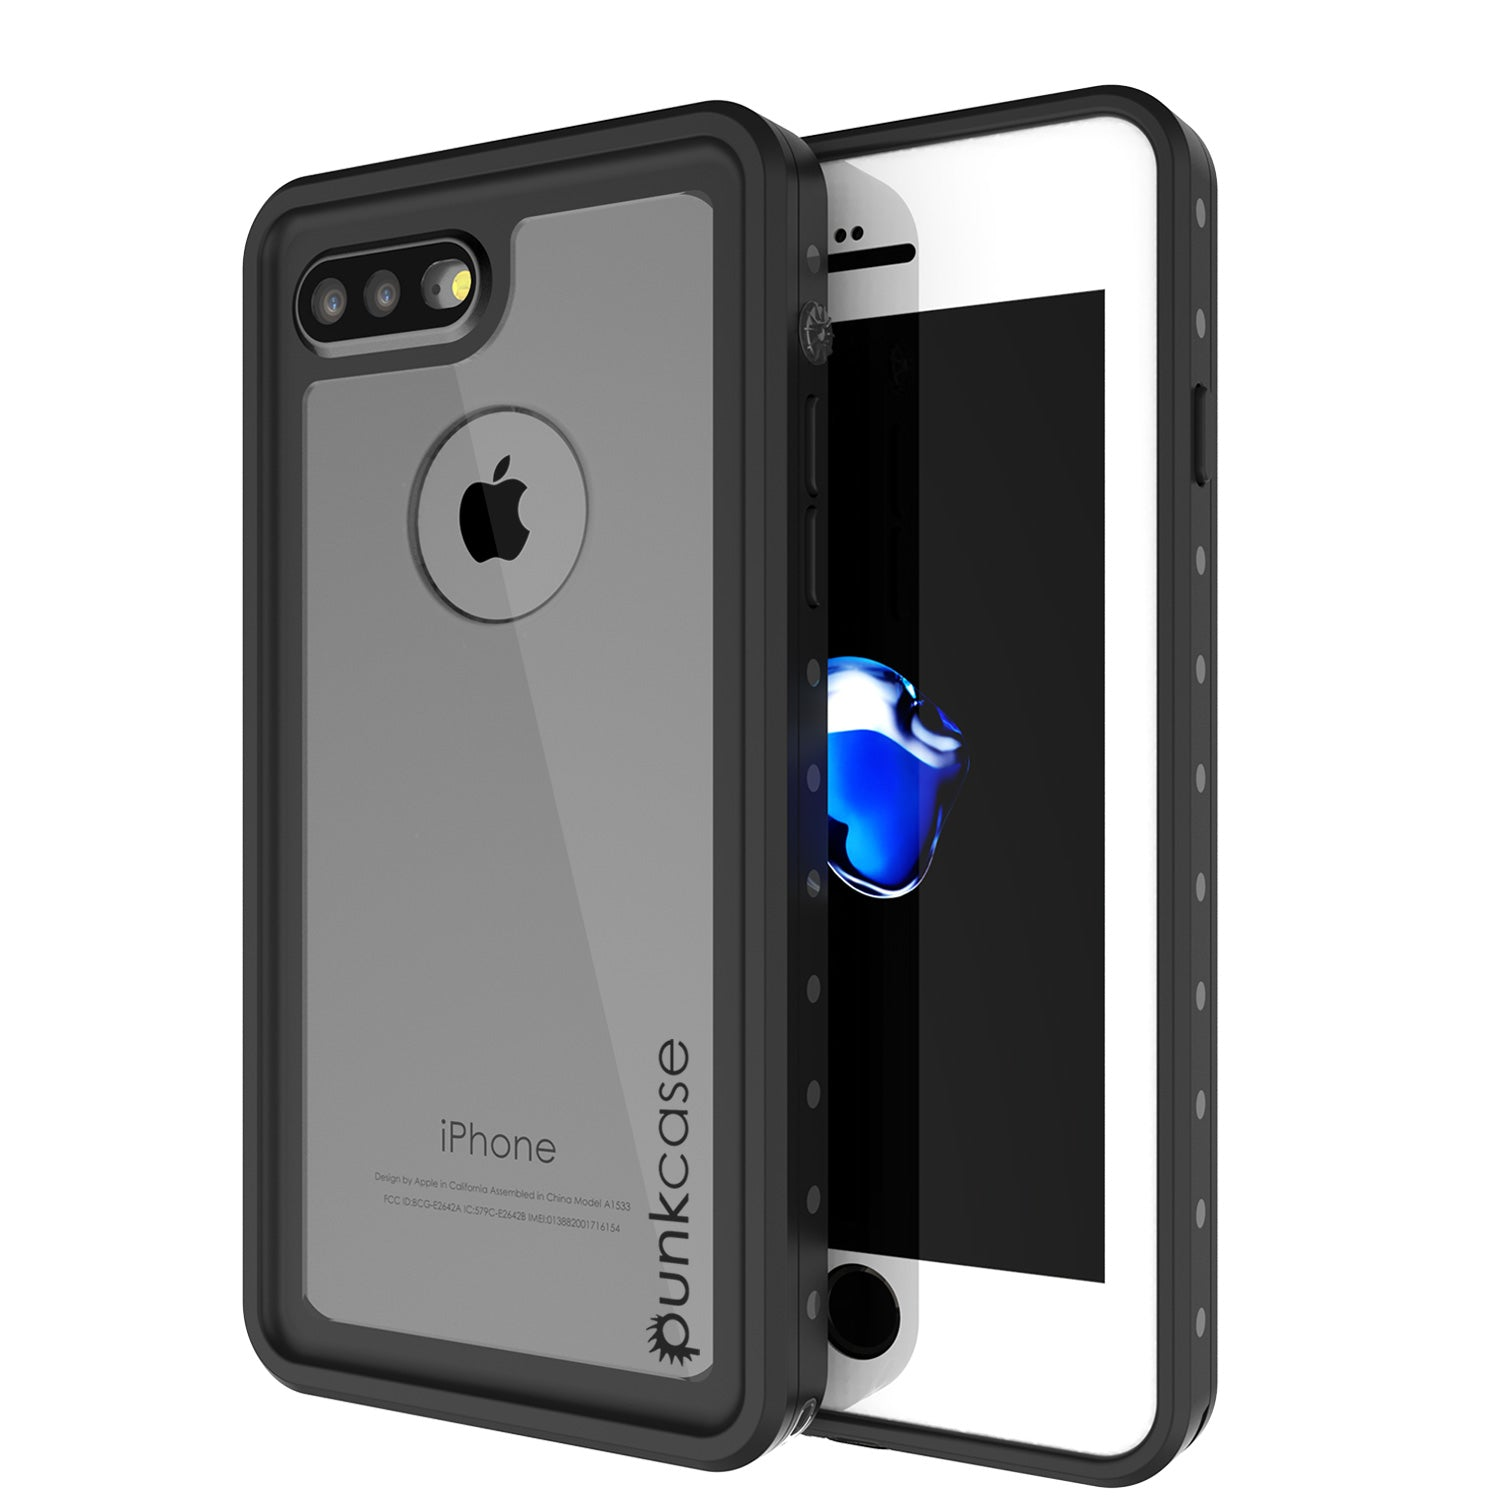 iPhone 7+ Plus Waterproof IP68 Case, Punkcase [Clear] [StudStar Series] [Slim Fit] [Dirtproof]